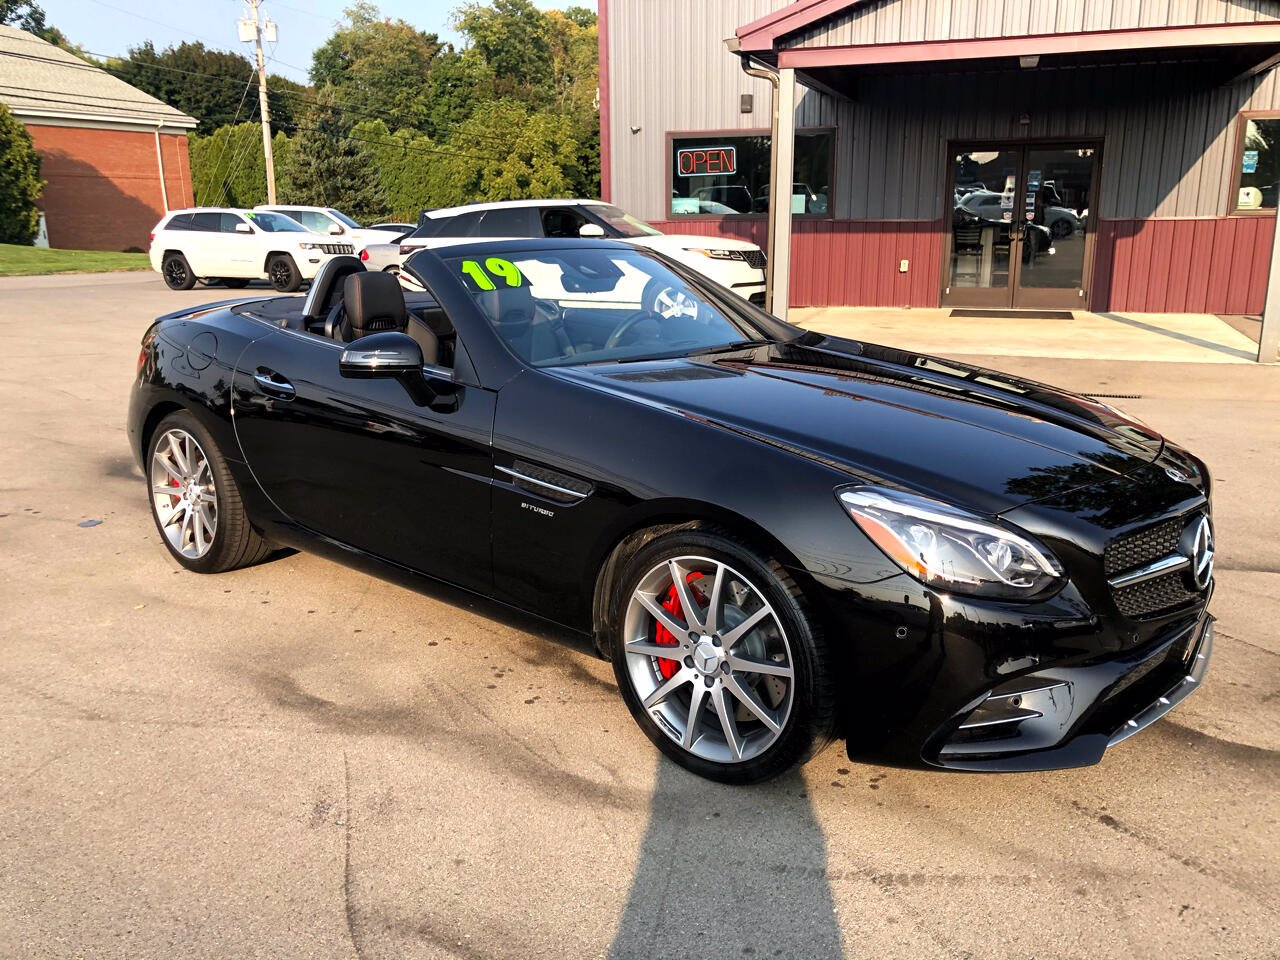 2019 Mercedes-benz SLC . Lot 999207568328 Vin WDDPK6GA8KF163592